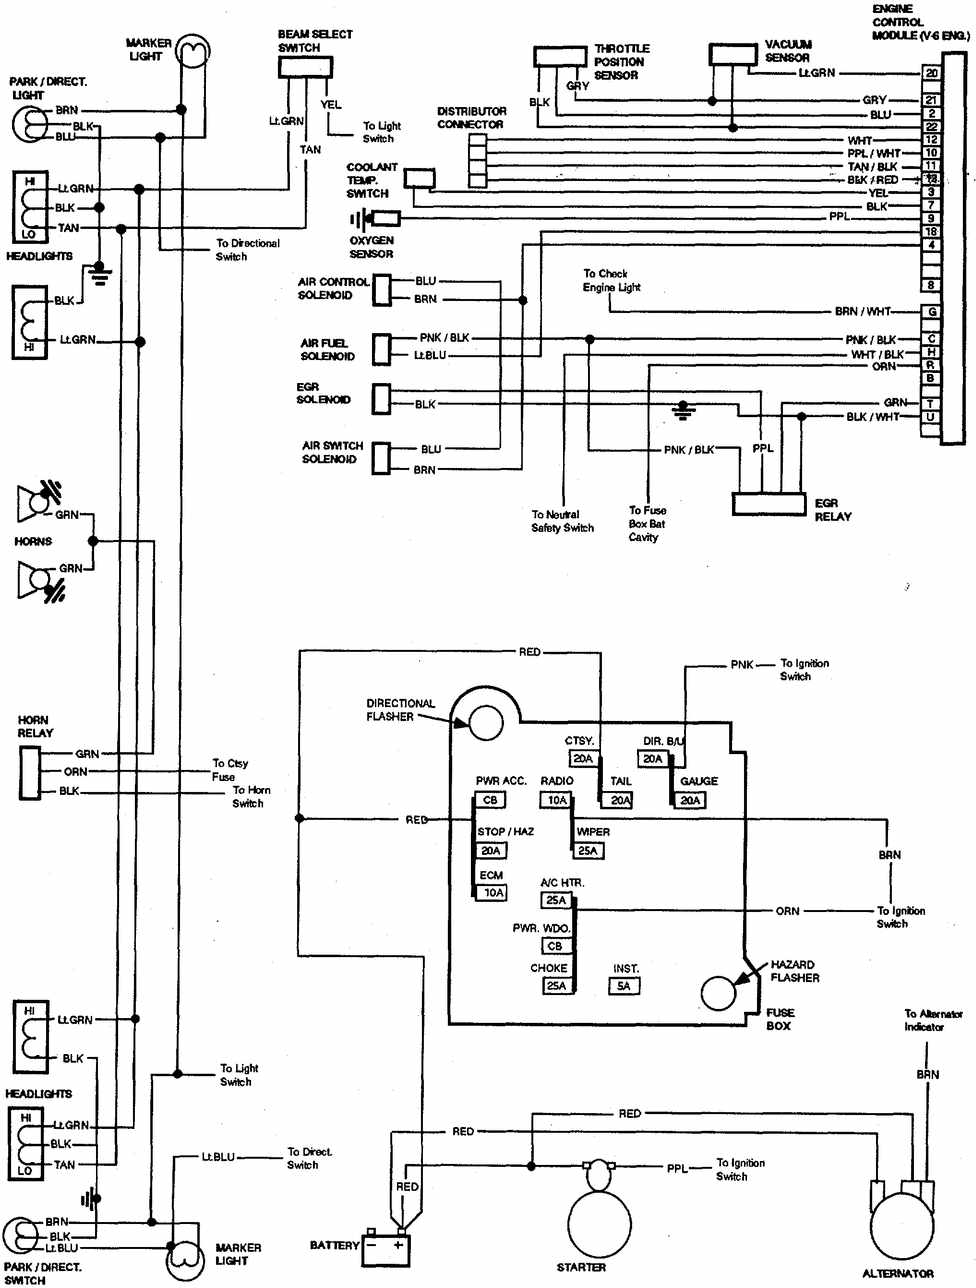 medium resolution of 1977 chevy wiring diagram free picture schematic simple wiring schema 305 chevy wiring diagrams free 75